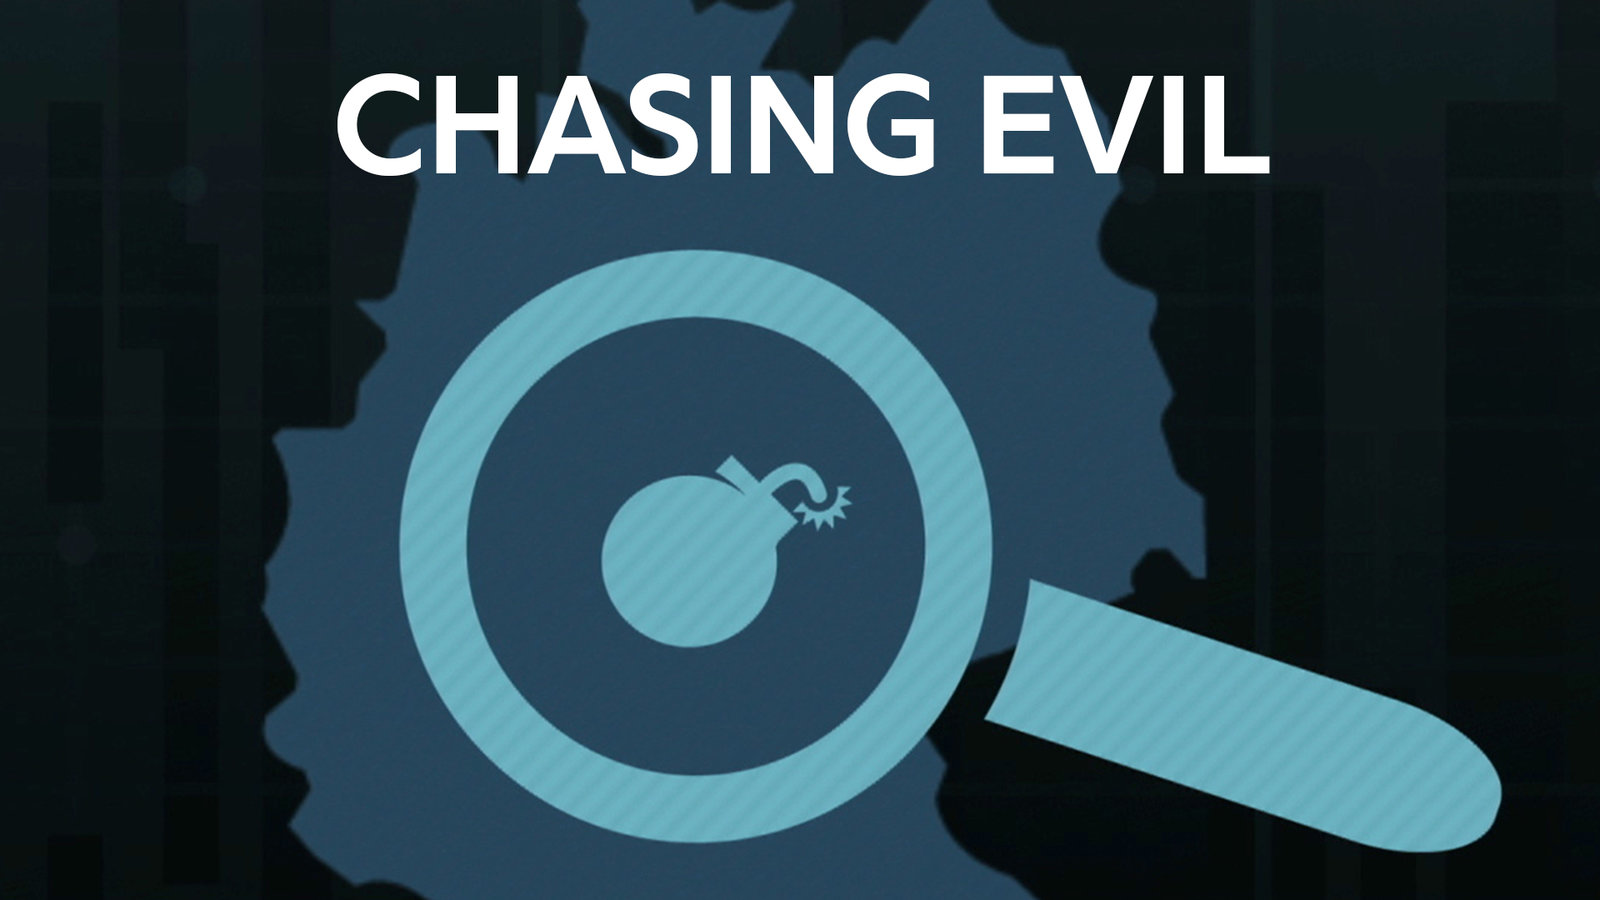 Chasing Evil - Hunting Terror on the Web